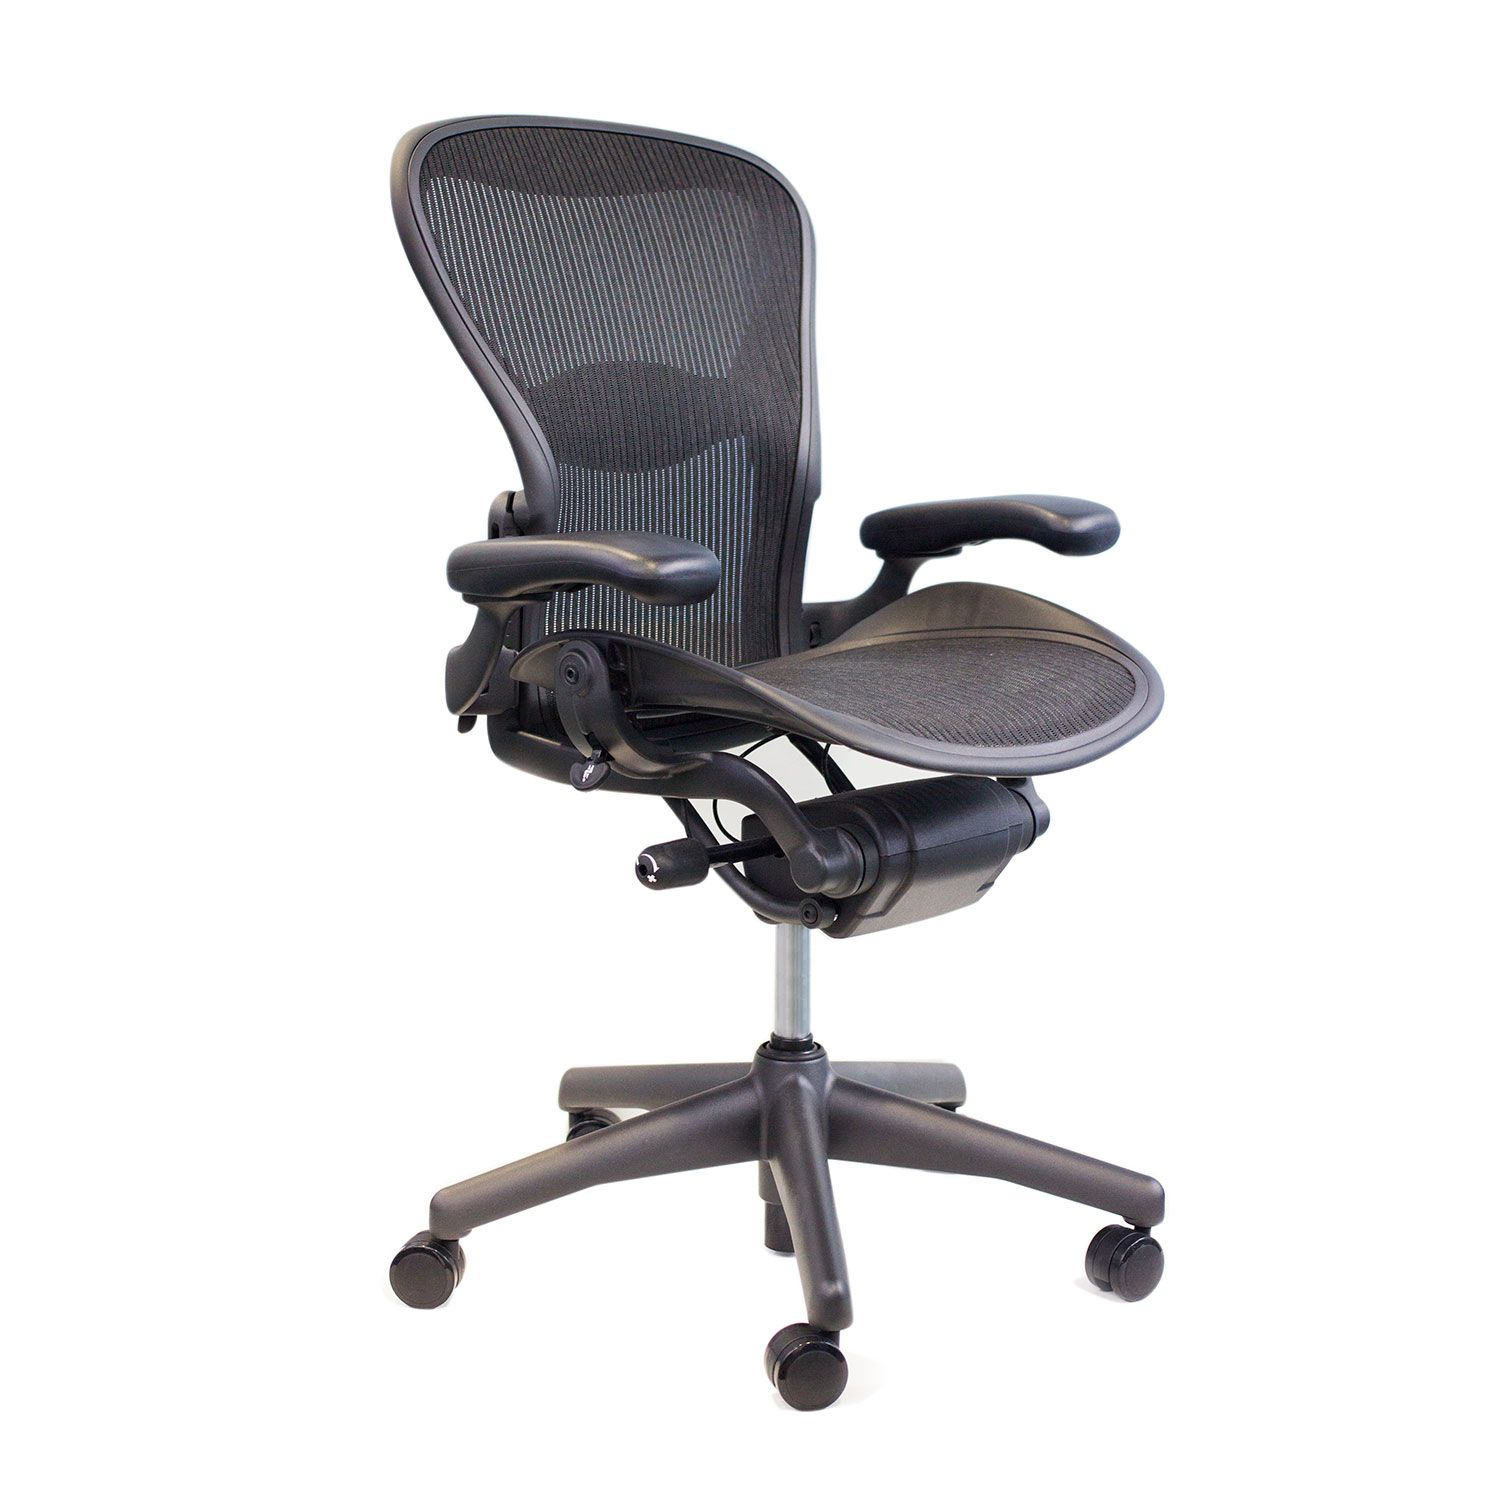 herman miller aeron chair sale b000hv6nvc buyvia. Black Bedroom Furniture Sets. Home Design Ideas